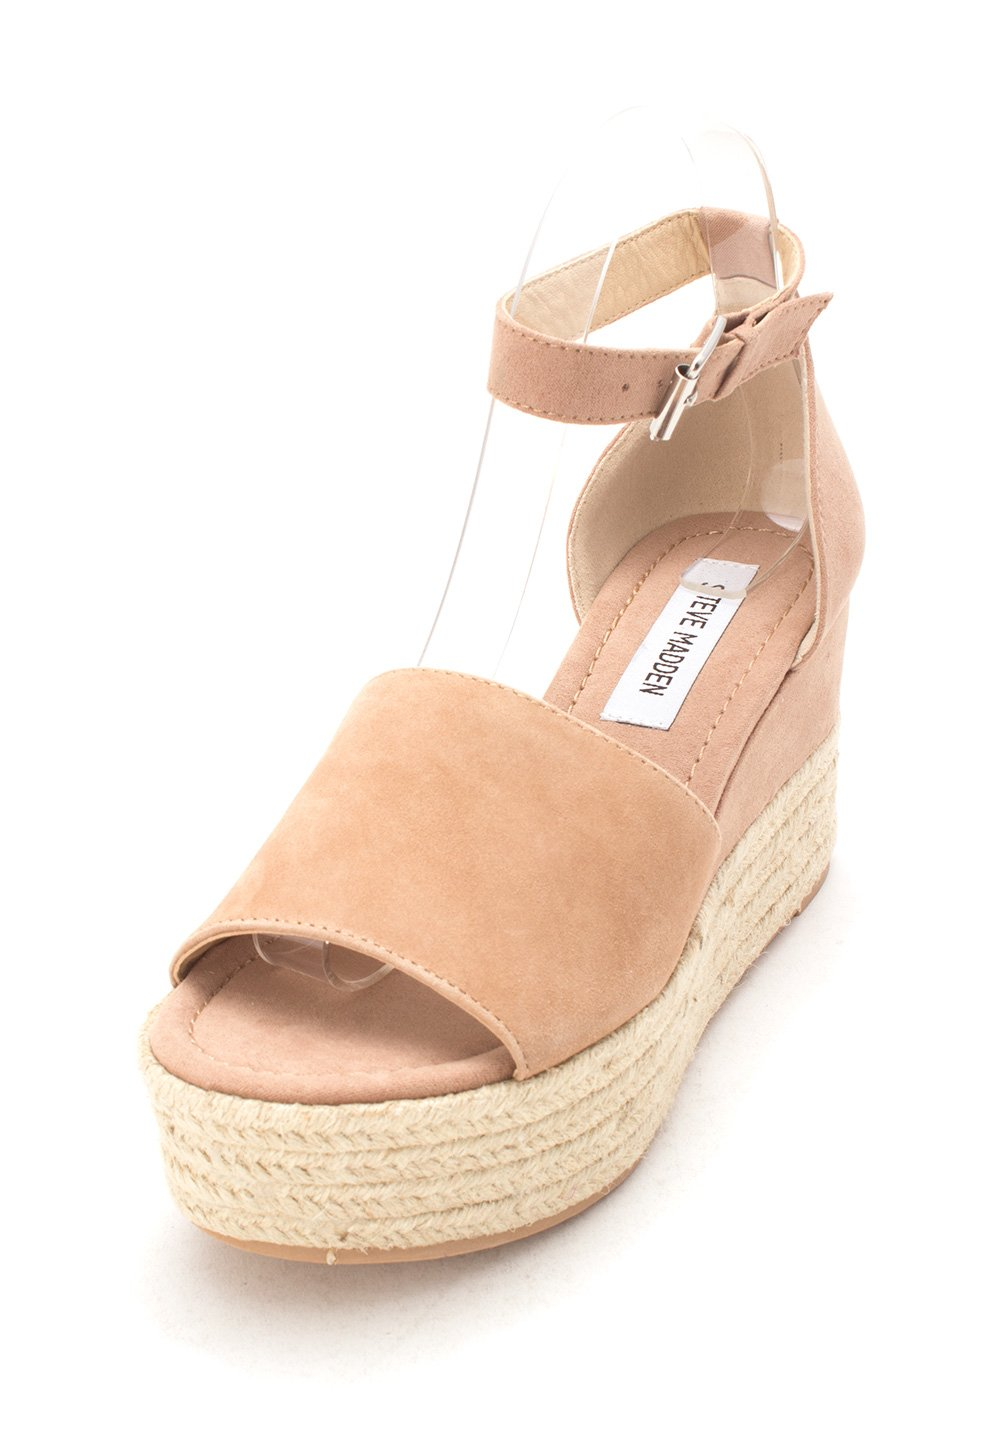 c773b87e3eb ... Steve Madden Womens Apolo Leather Open Toe Casual Espadrille US